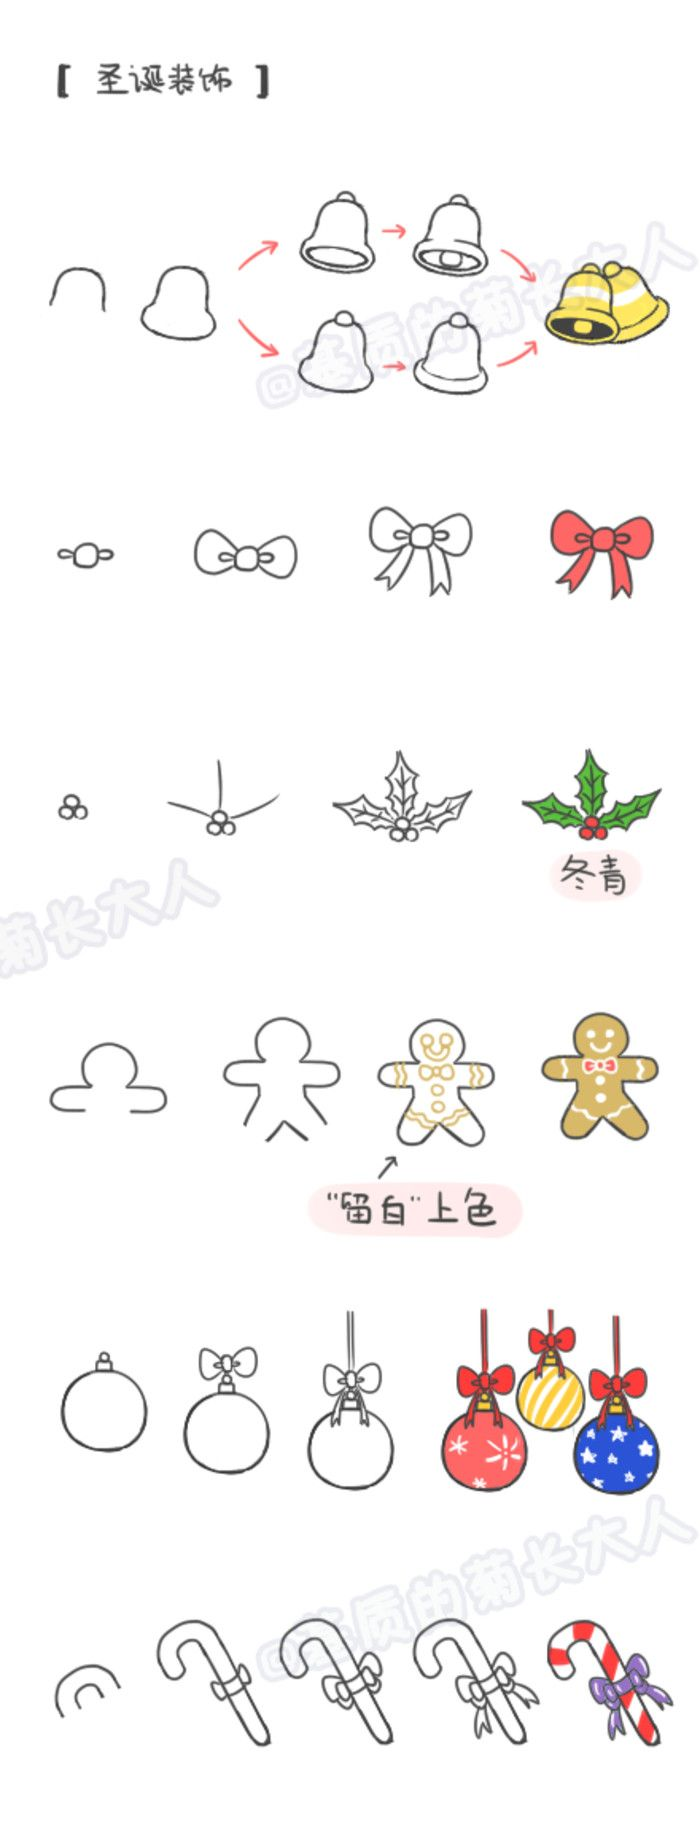 How to draw Christmas decoration, chrysanthemum from substrates grown man!